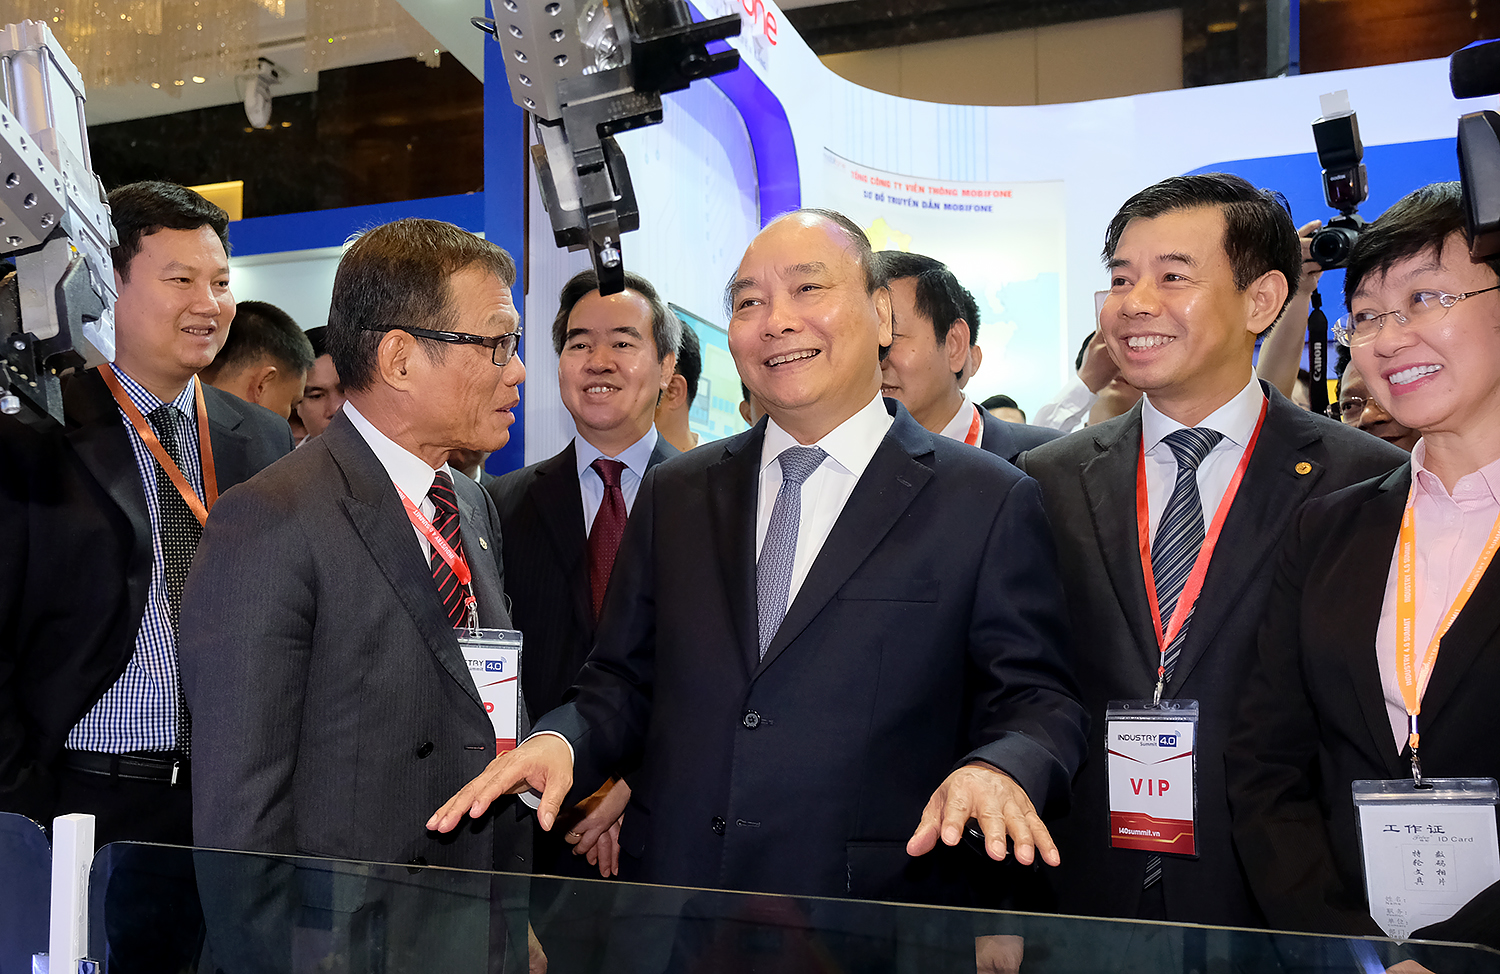 With resolve, Vietnam ready to move forward in Industry 4.0: PM says